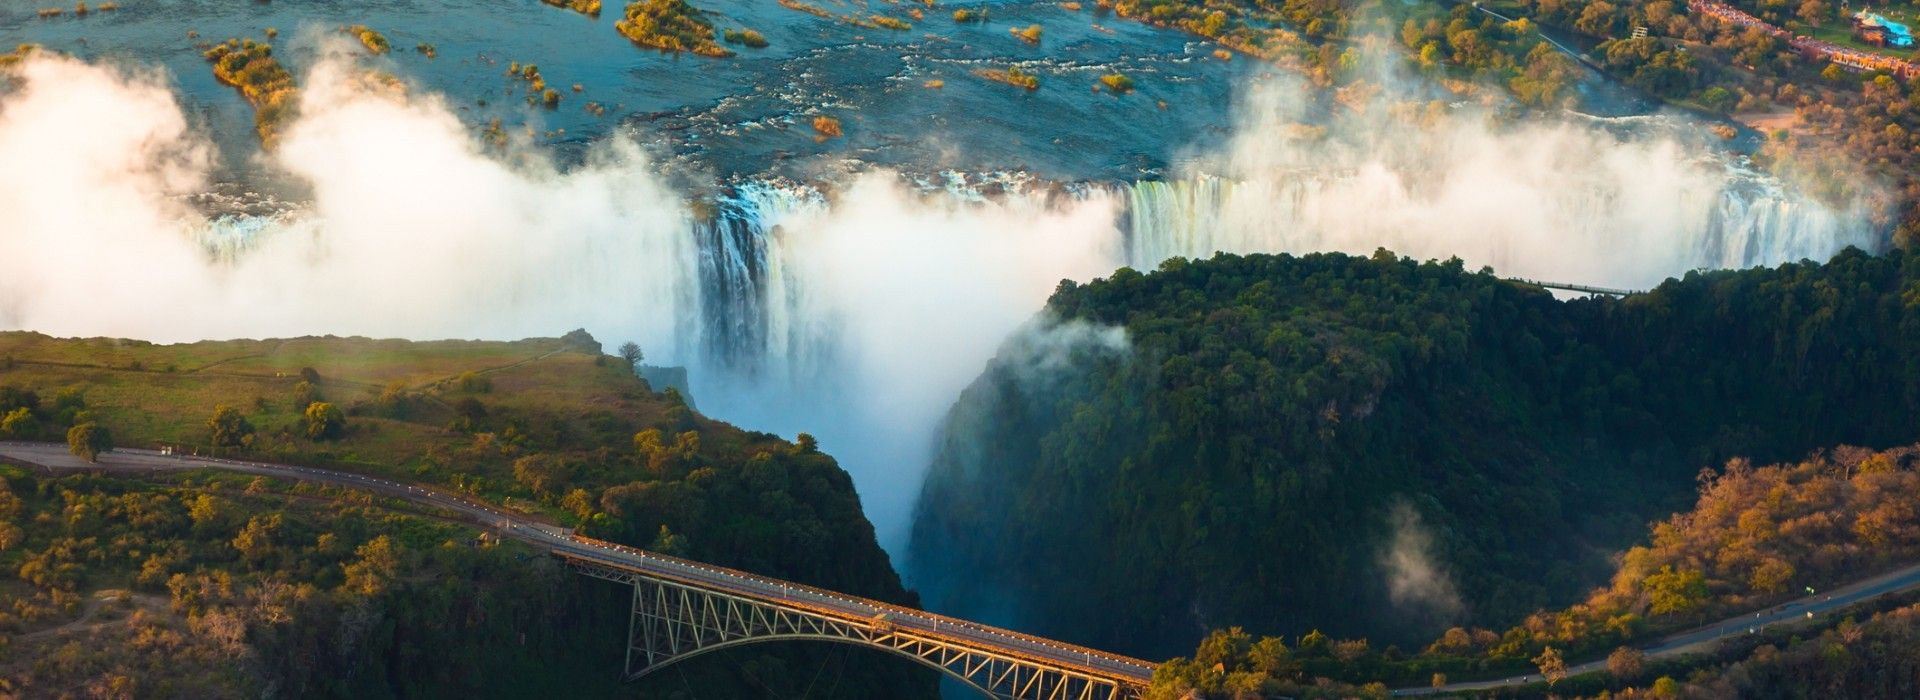 Zambia Tours and Vacation Packages